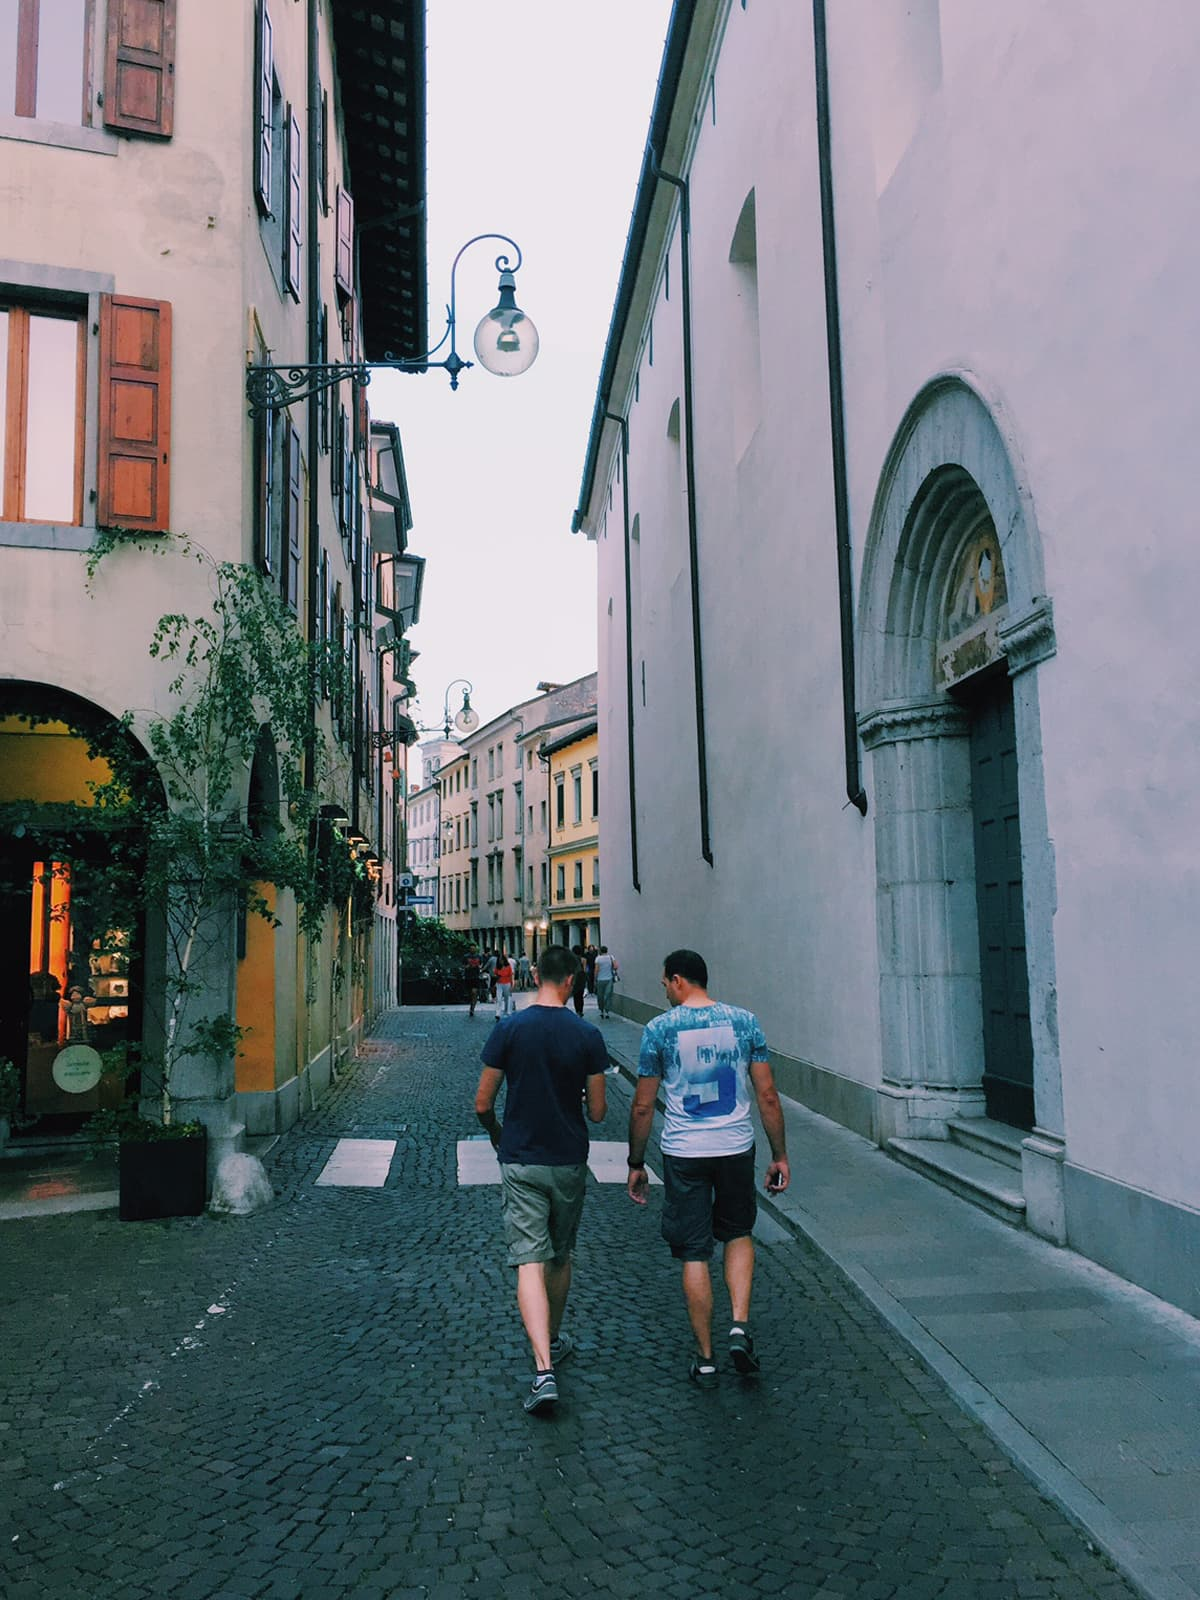 A street in Udine